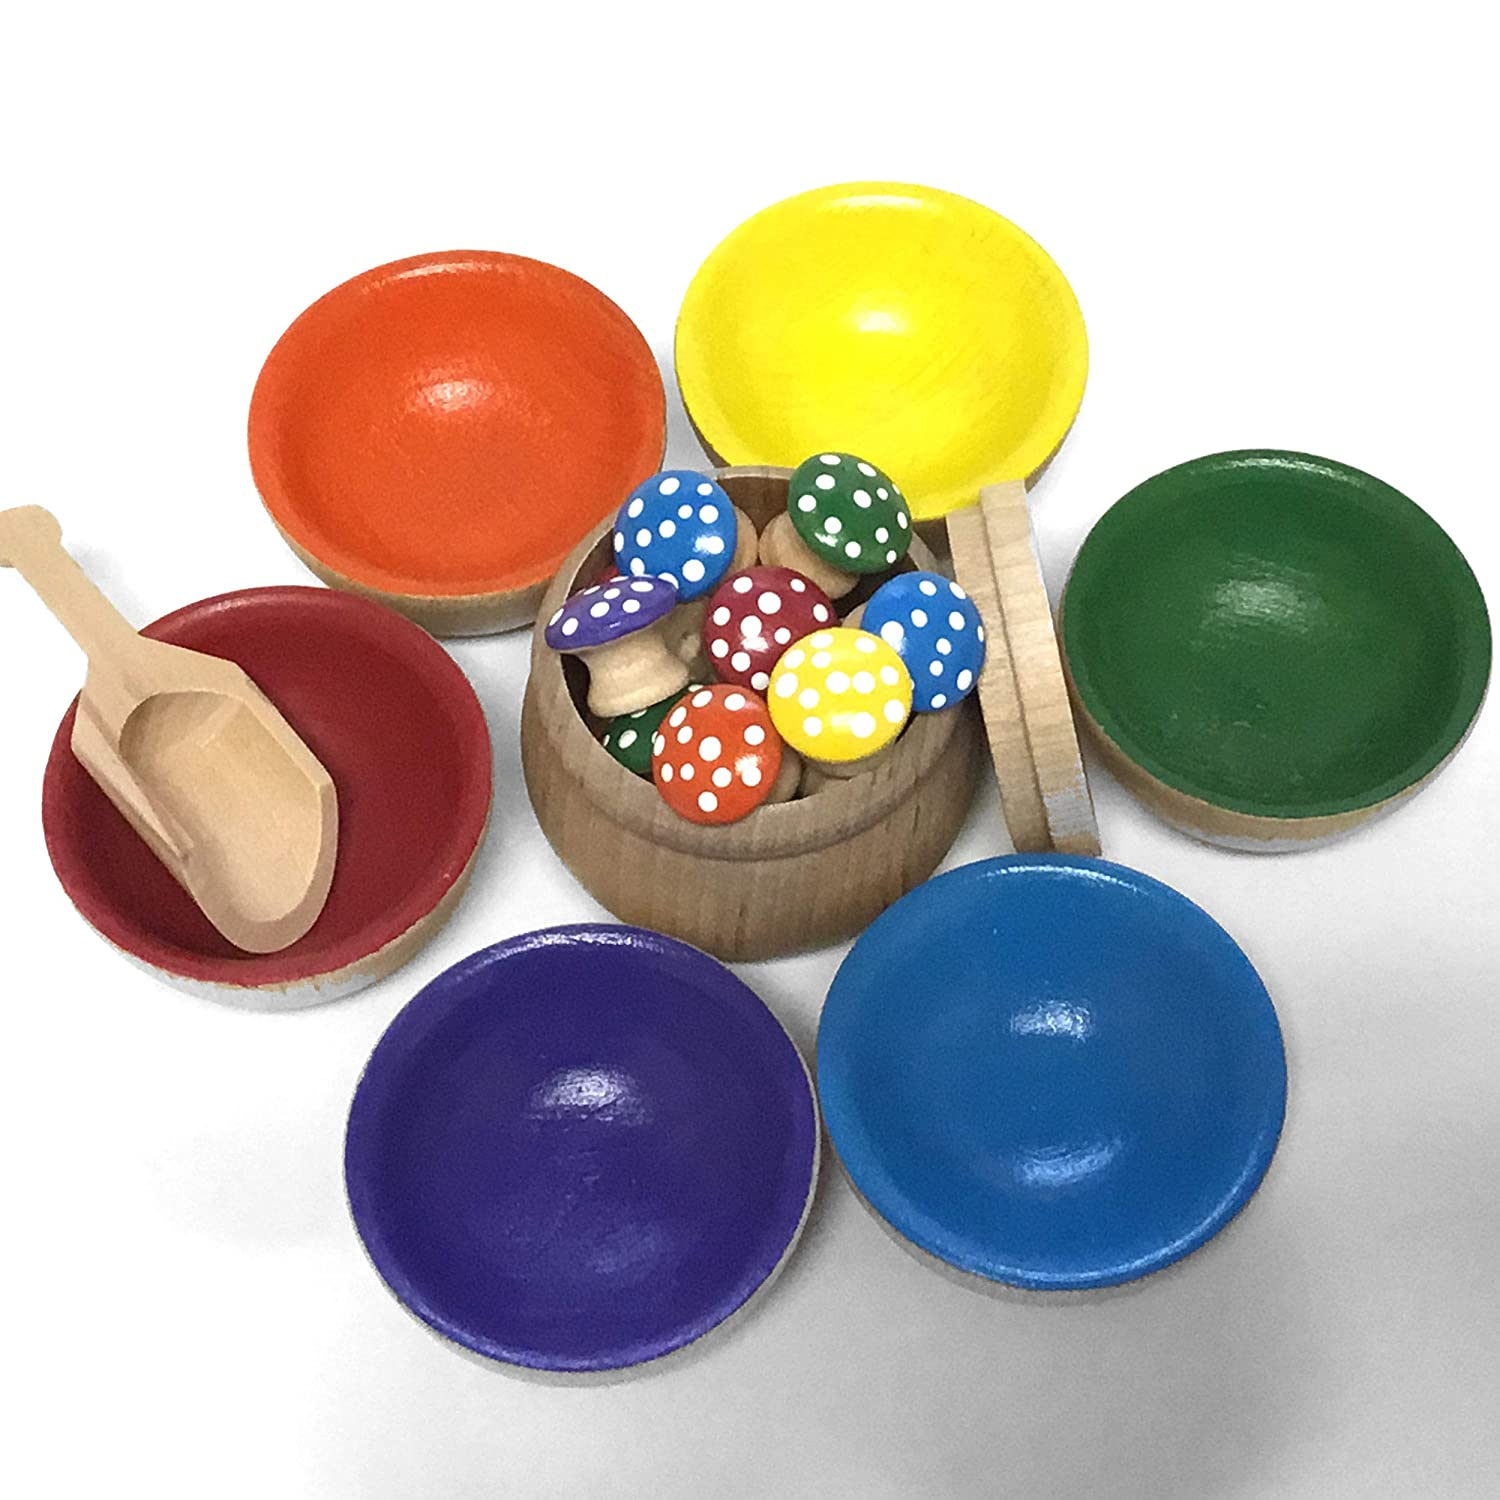 MDH Toys Handcrafted Solid Wood Mushroom and Bowls Colour Sorting Set M.D. Handfield Designs Inc.